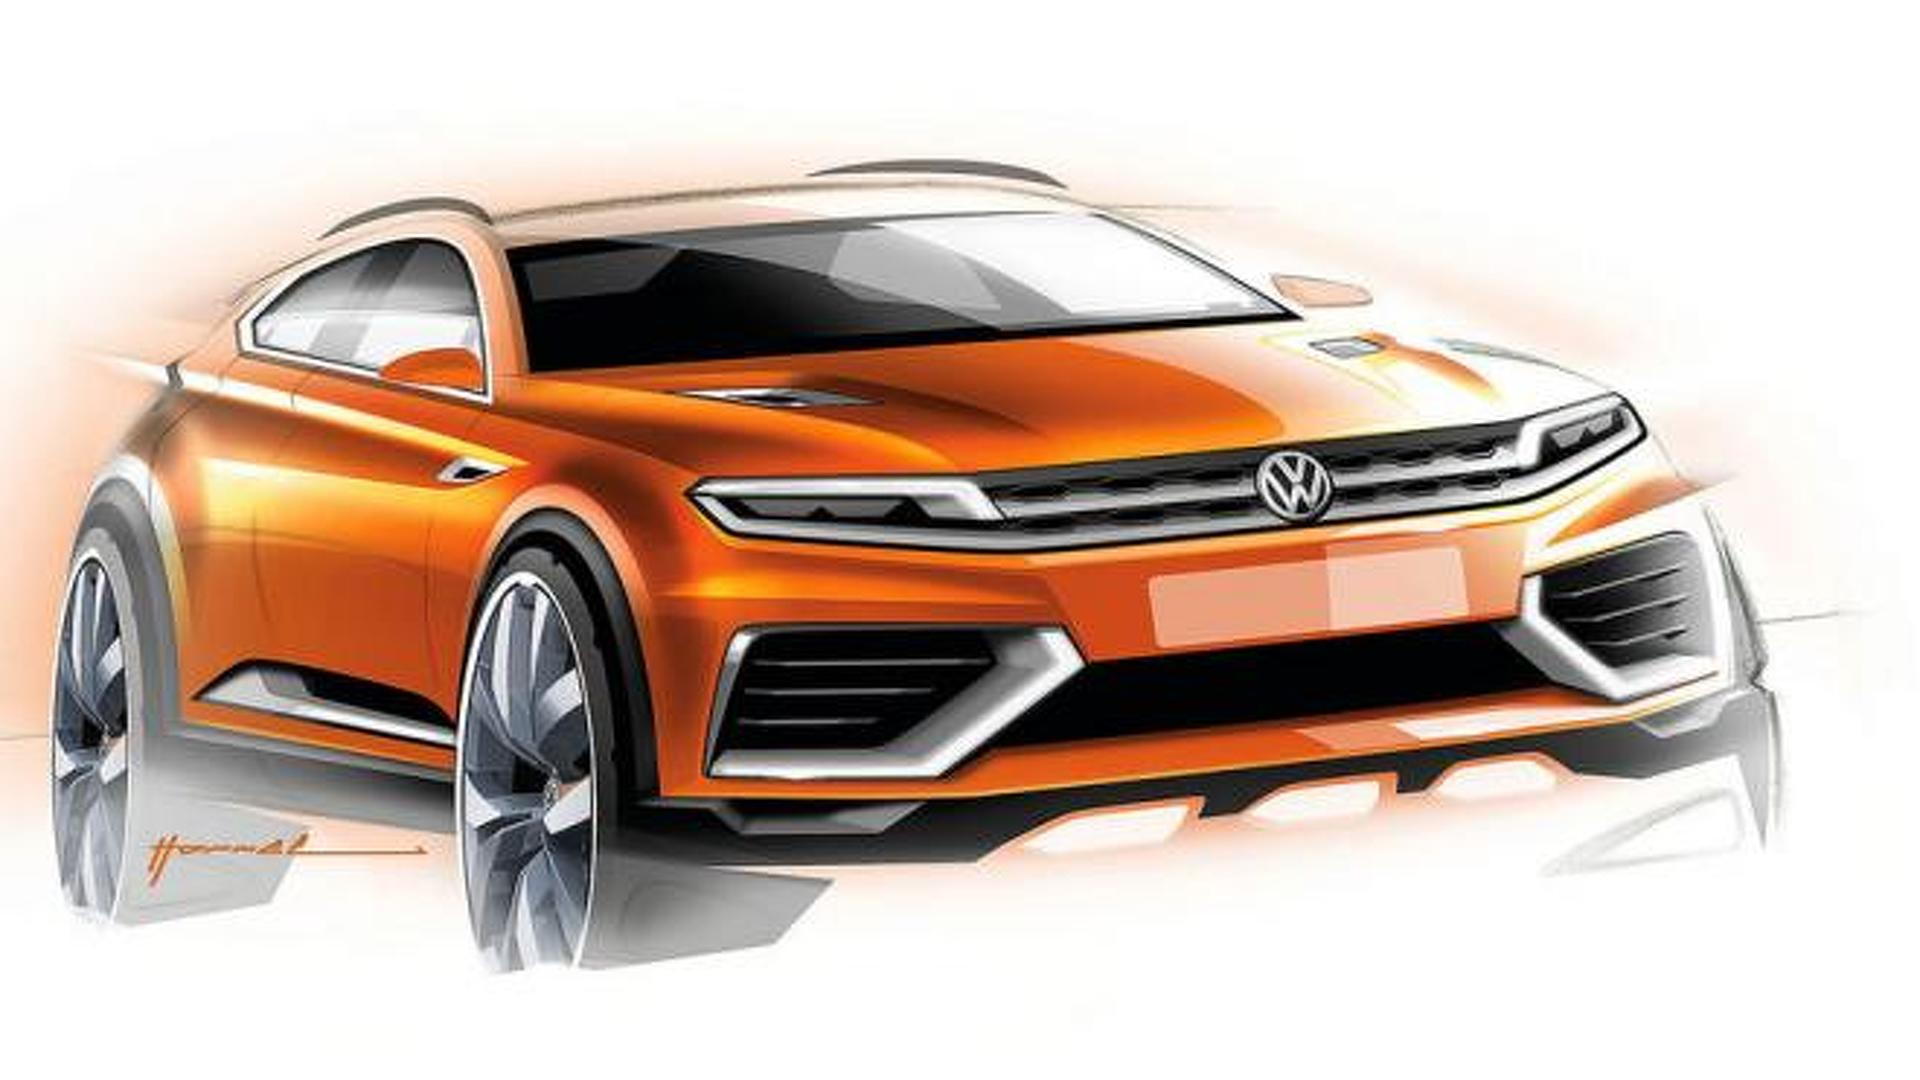 Volkswagen to introduce a new crossover concept in Detroit